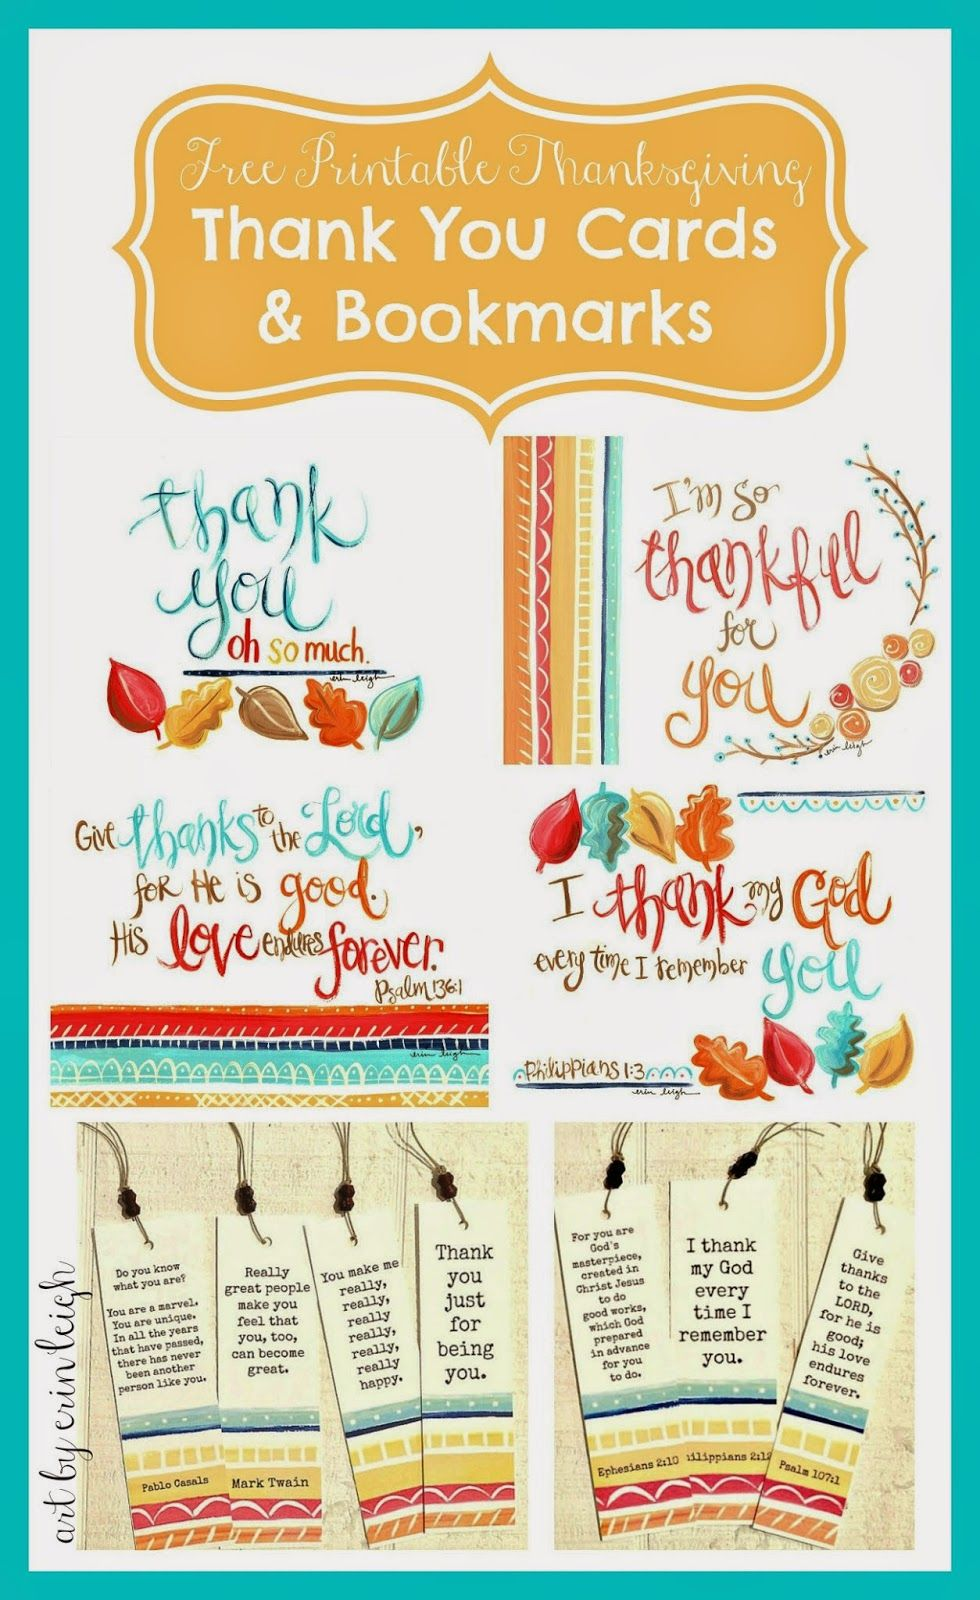 say thank you free thanksgiving printable thank you cards. Black Bedroom Furniture Sets. Home Design Ideas